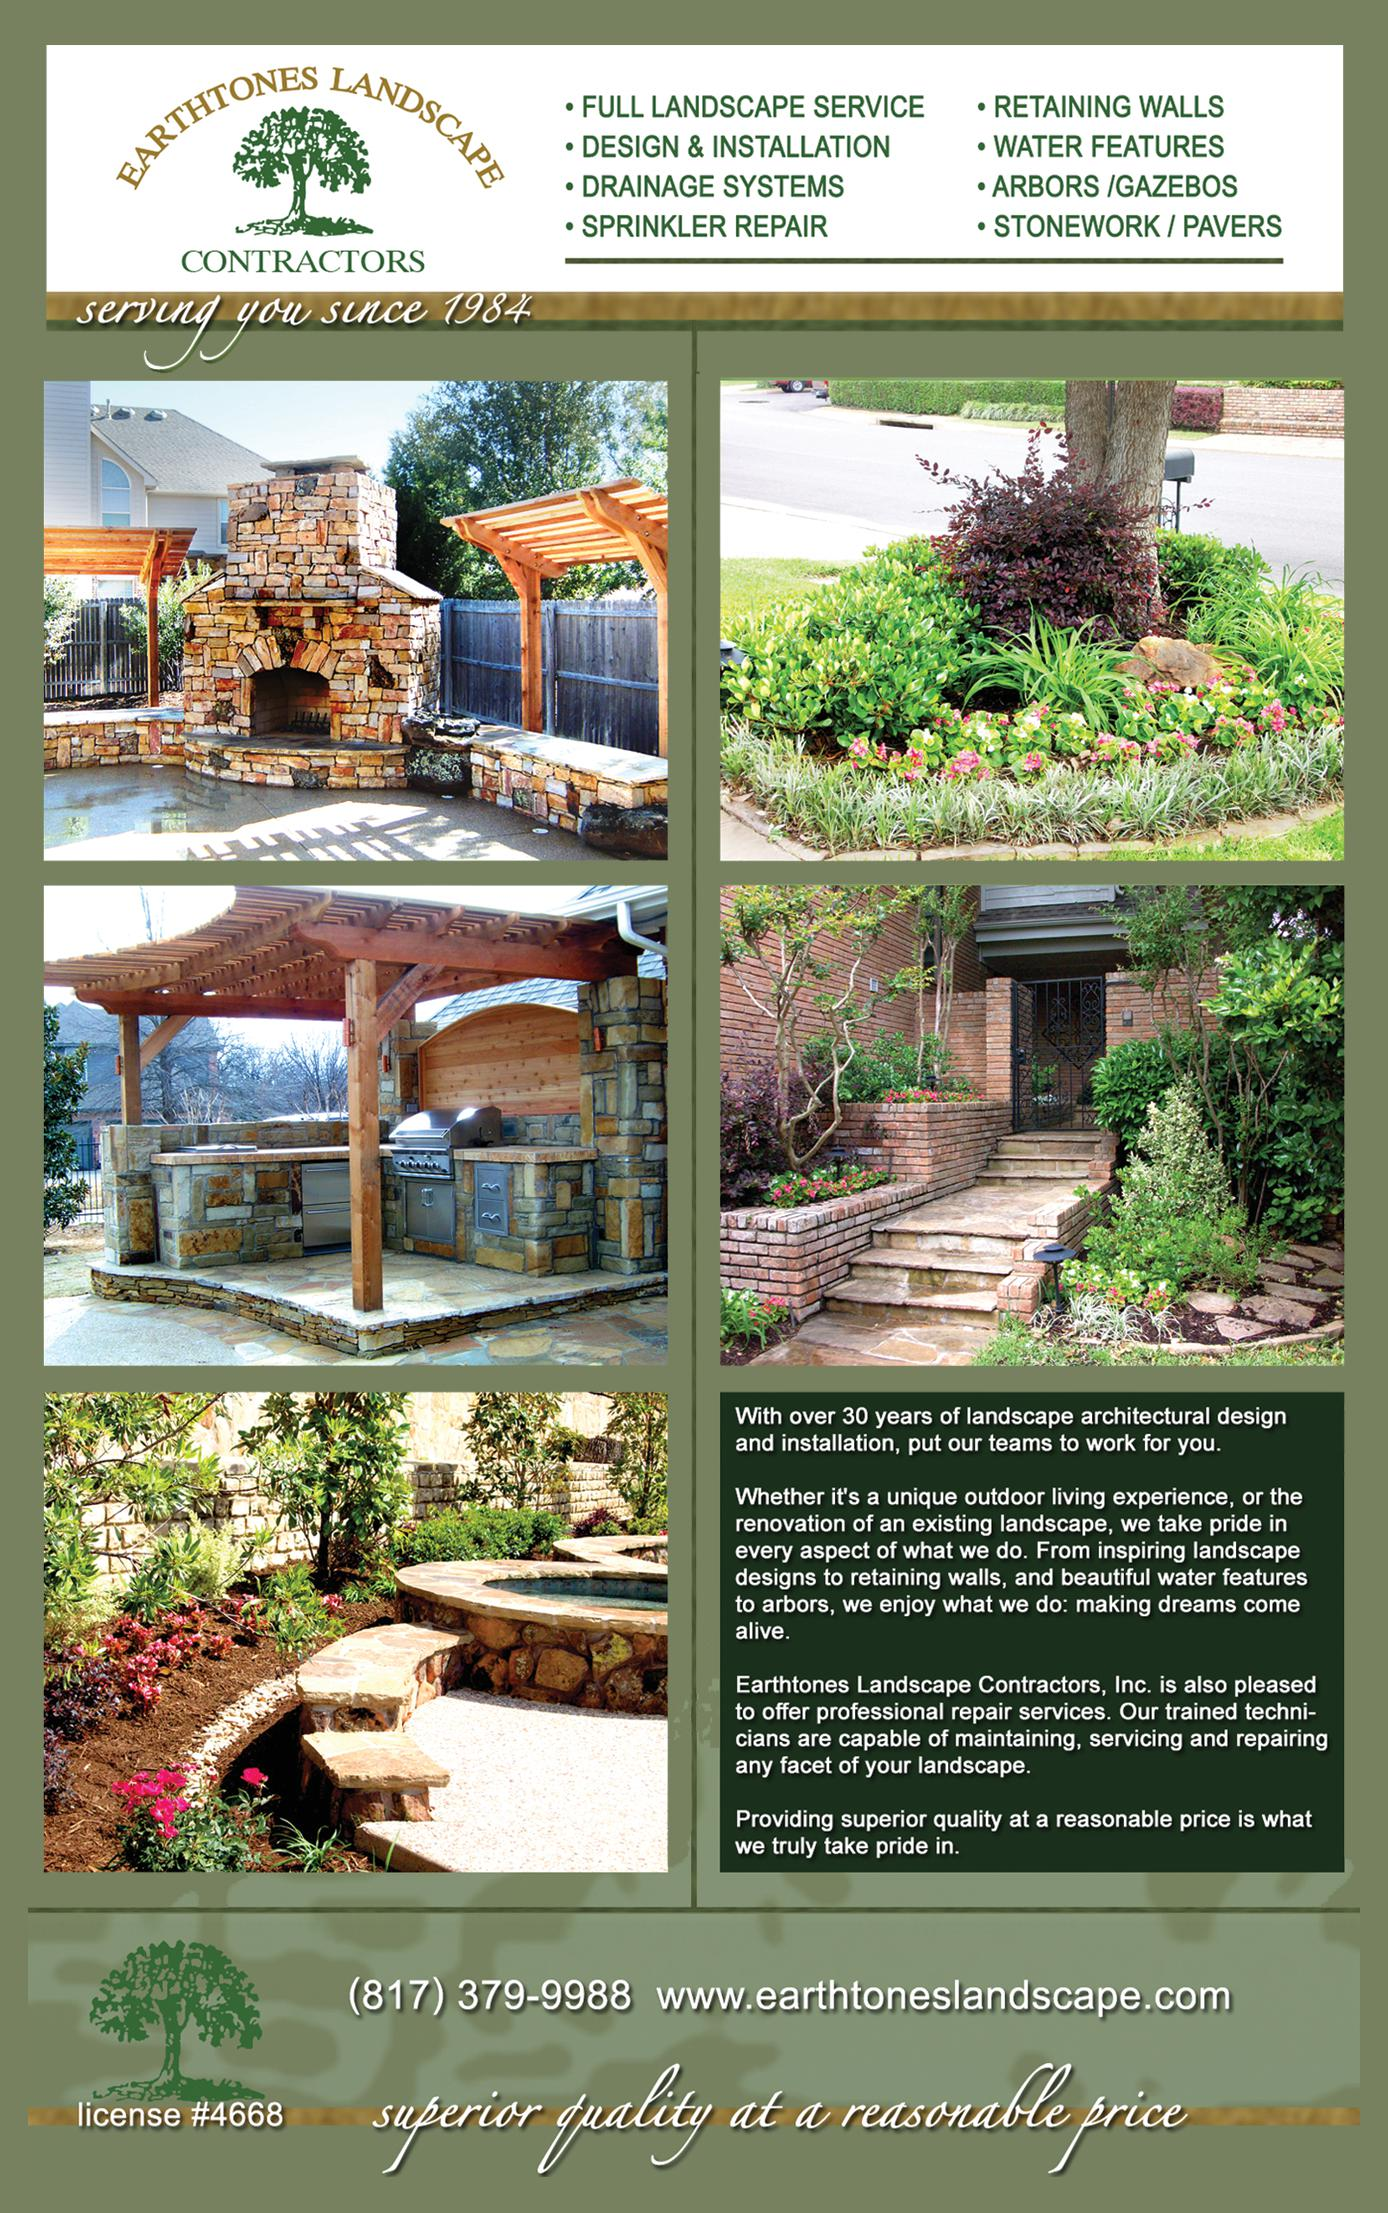 Earthtones Landscape Contractors, Inc.